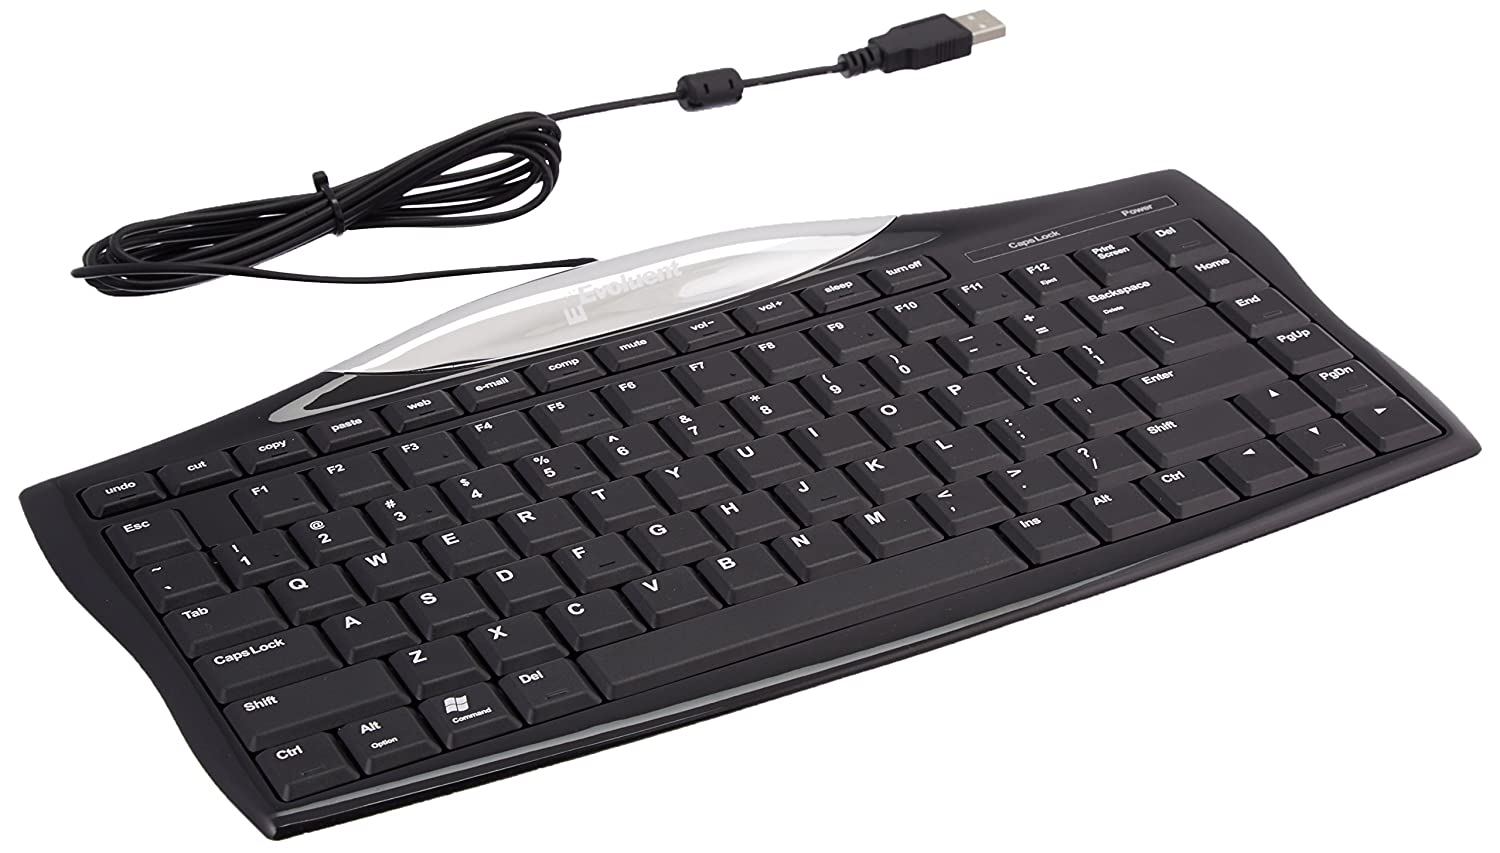 Amazon.com: Evoluent Wired Essentials Full Featured Compact Keyboard - EKB:  Computers & Accessories